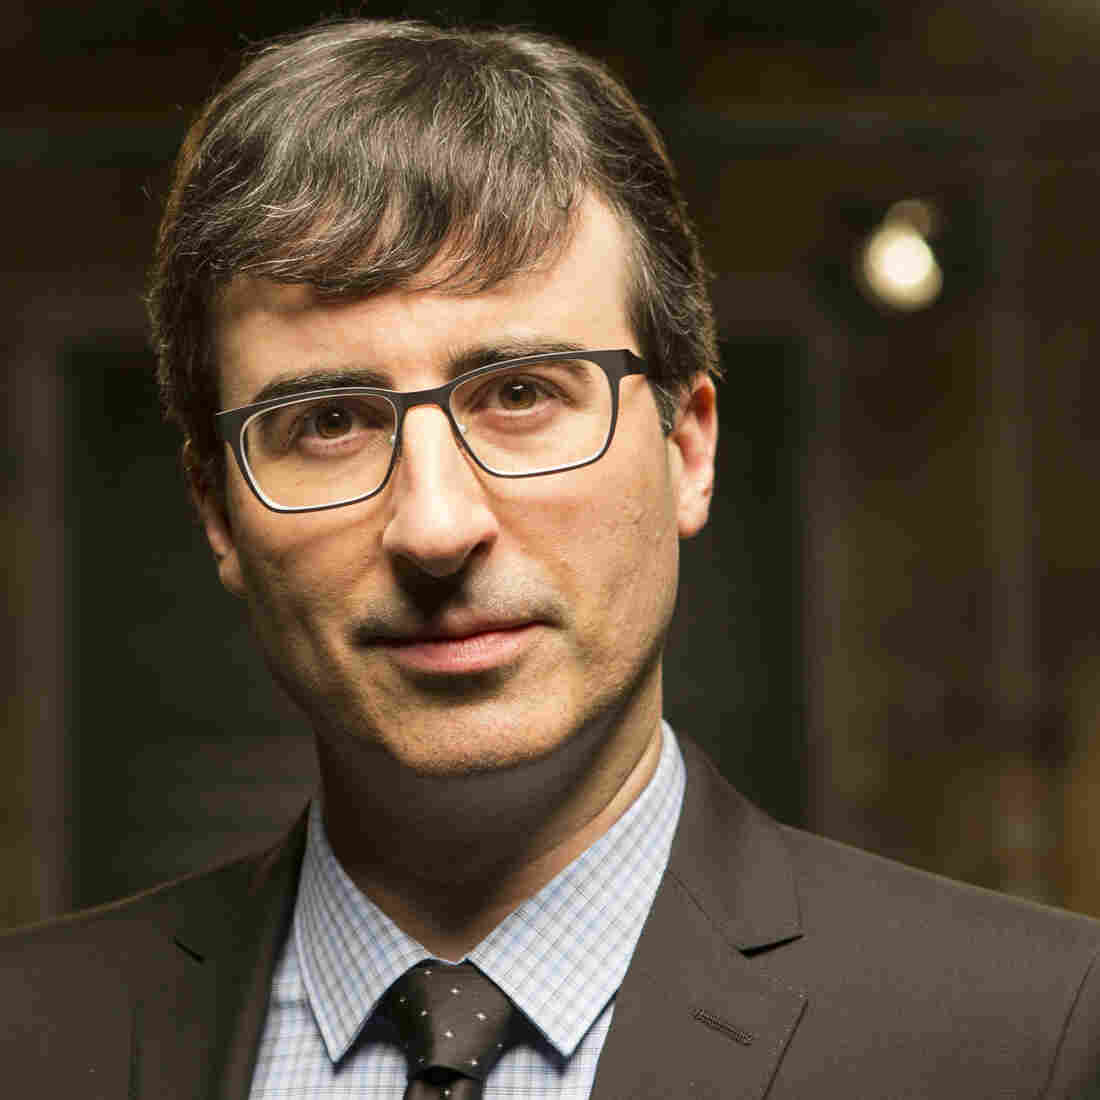 John Oliver Is No One's Friend On His New HBO Show